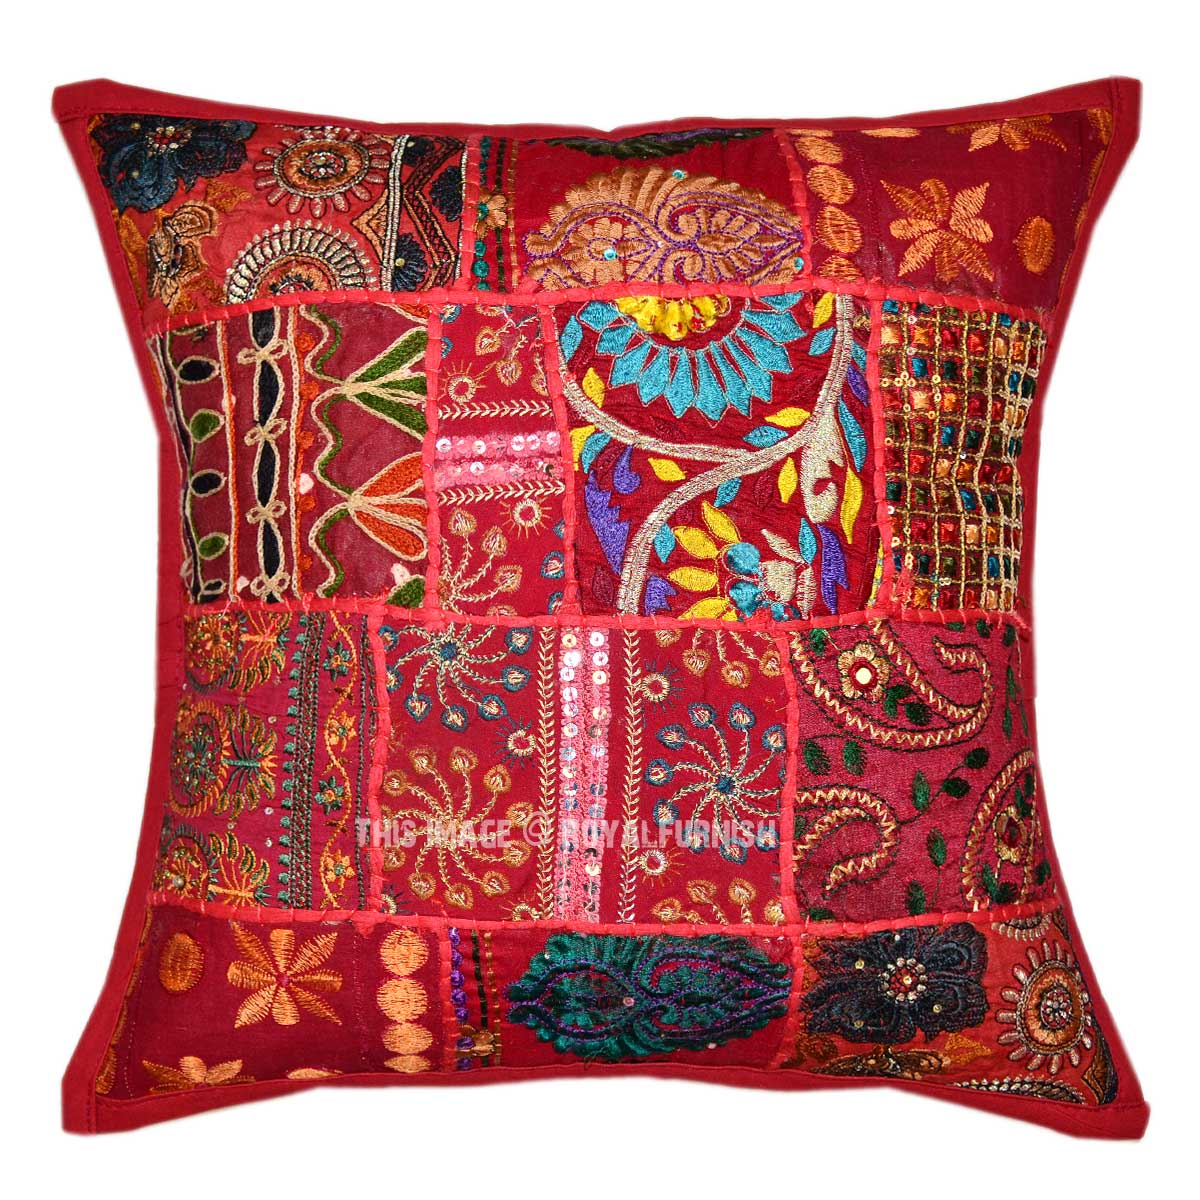 Unique Decorative Pillows For Couch : Decorative Boho Accent Unique Pretty Patchwork 16X16 Square Throw Pillow Cover - RoyalFurnish.com